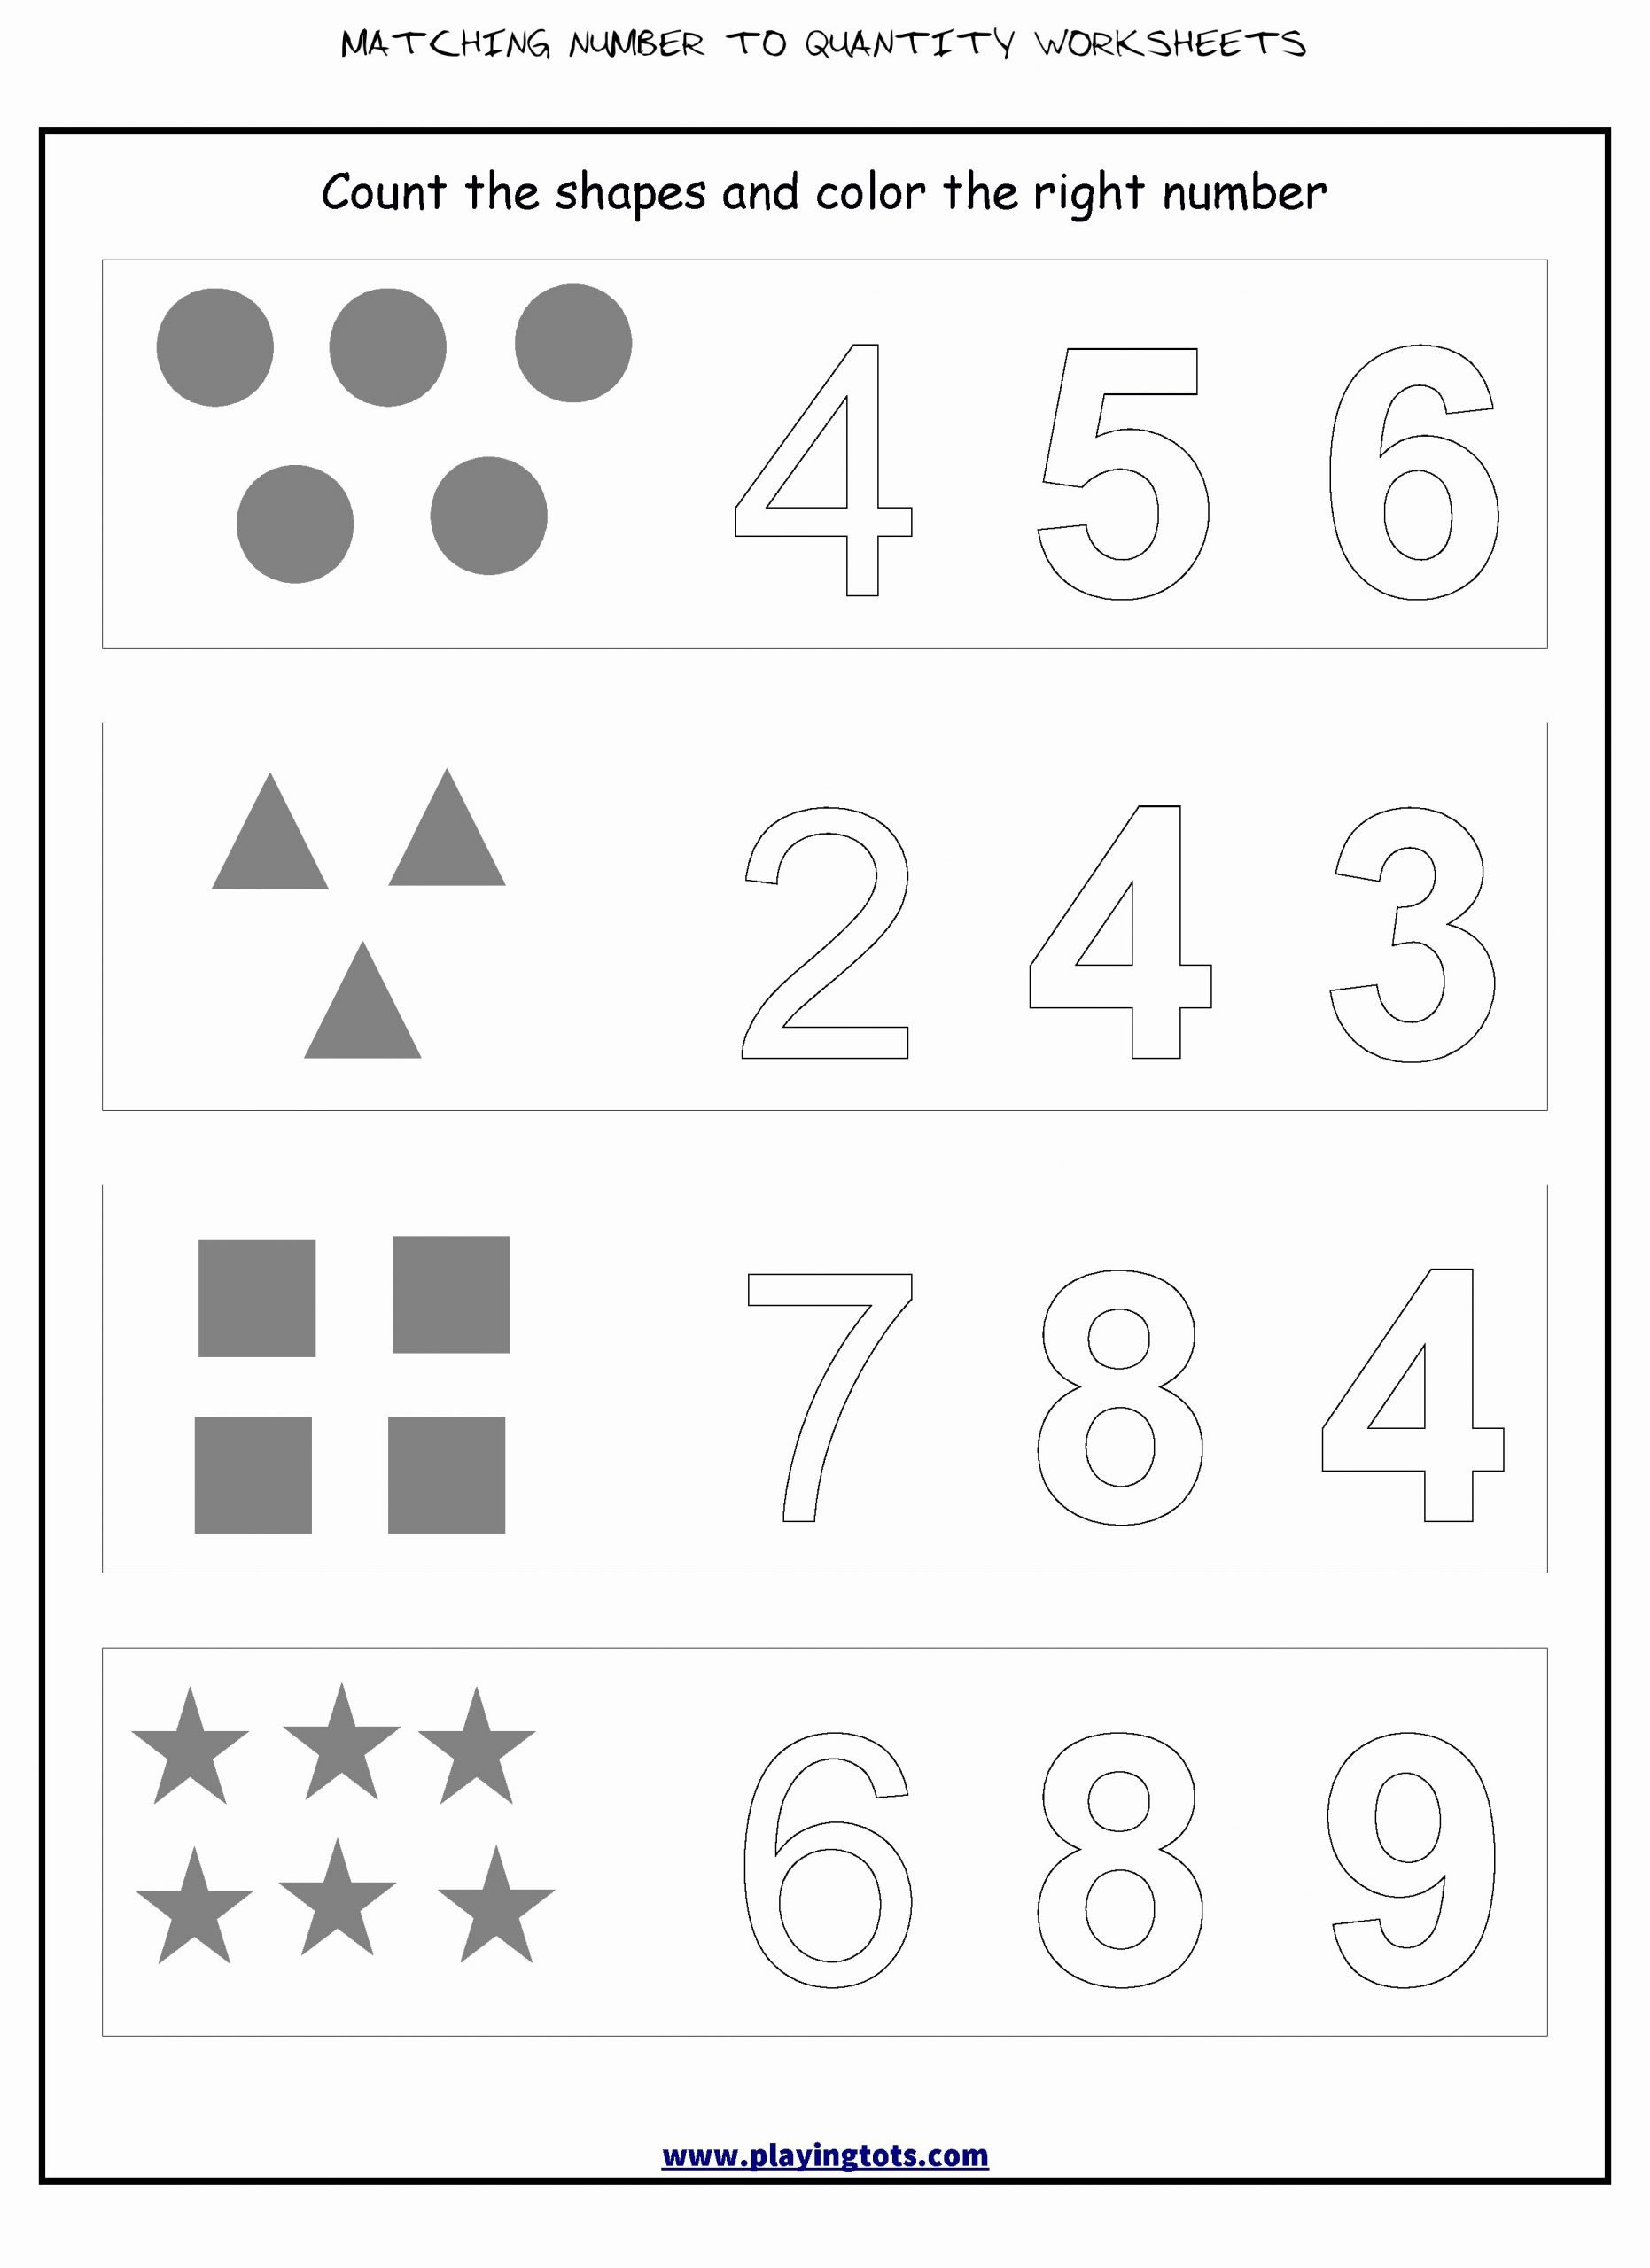 Matching Numbers Worksheets For Preschoolers